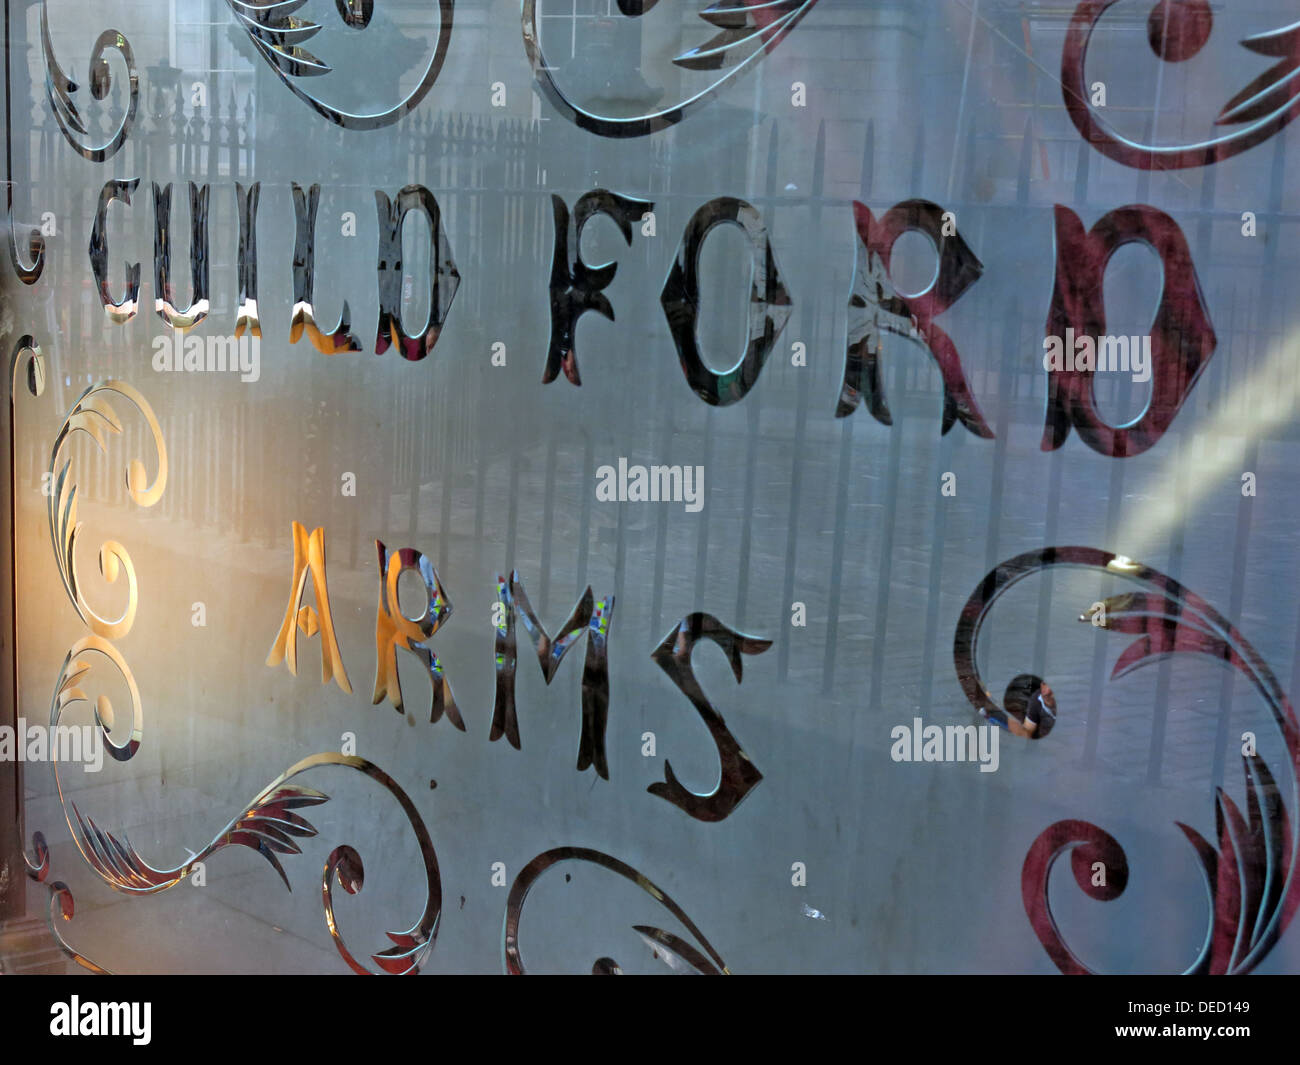 Guildford Arms glass etched pub window, West Register St, Edinburgh, Scotland,UK - Stock Image